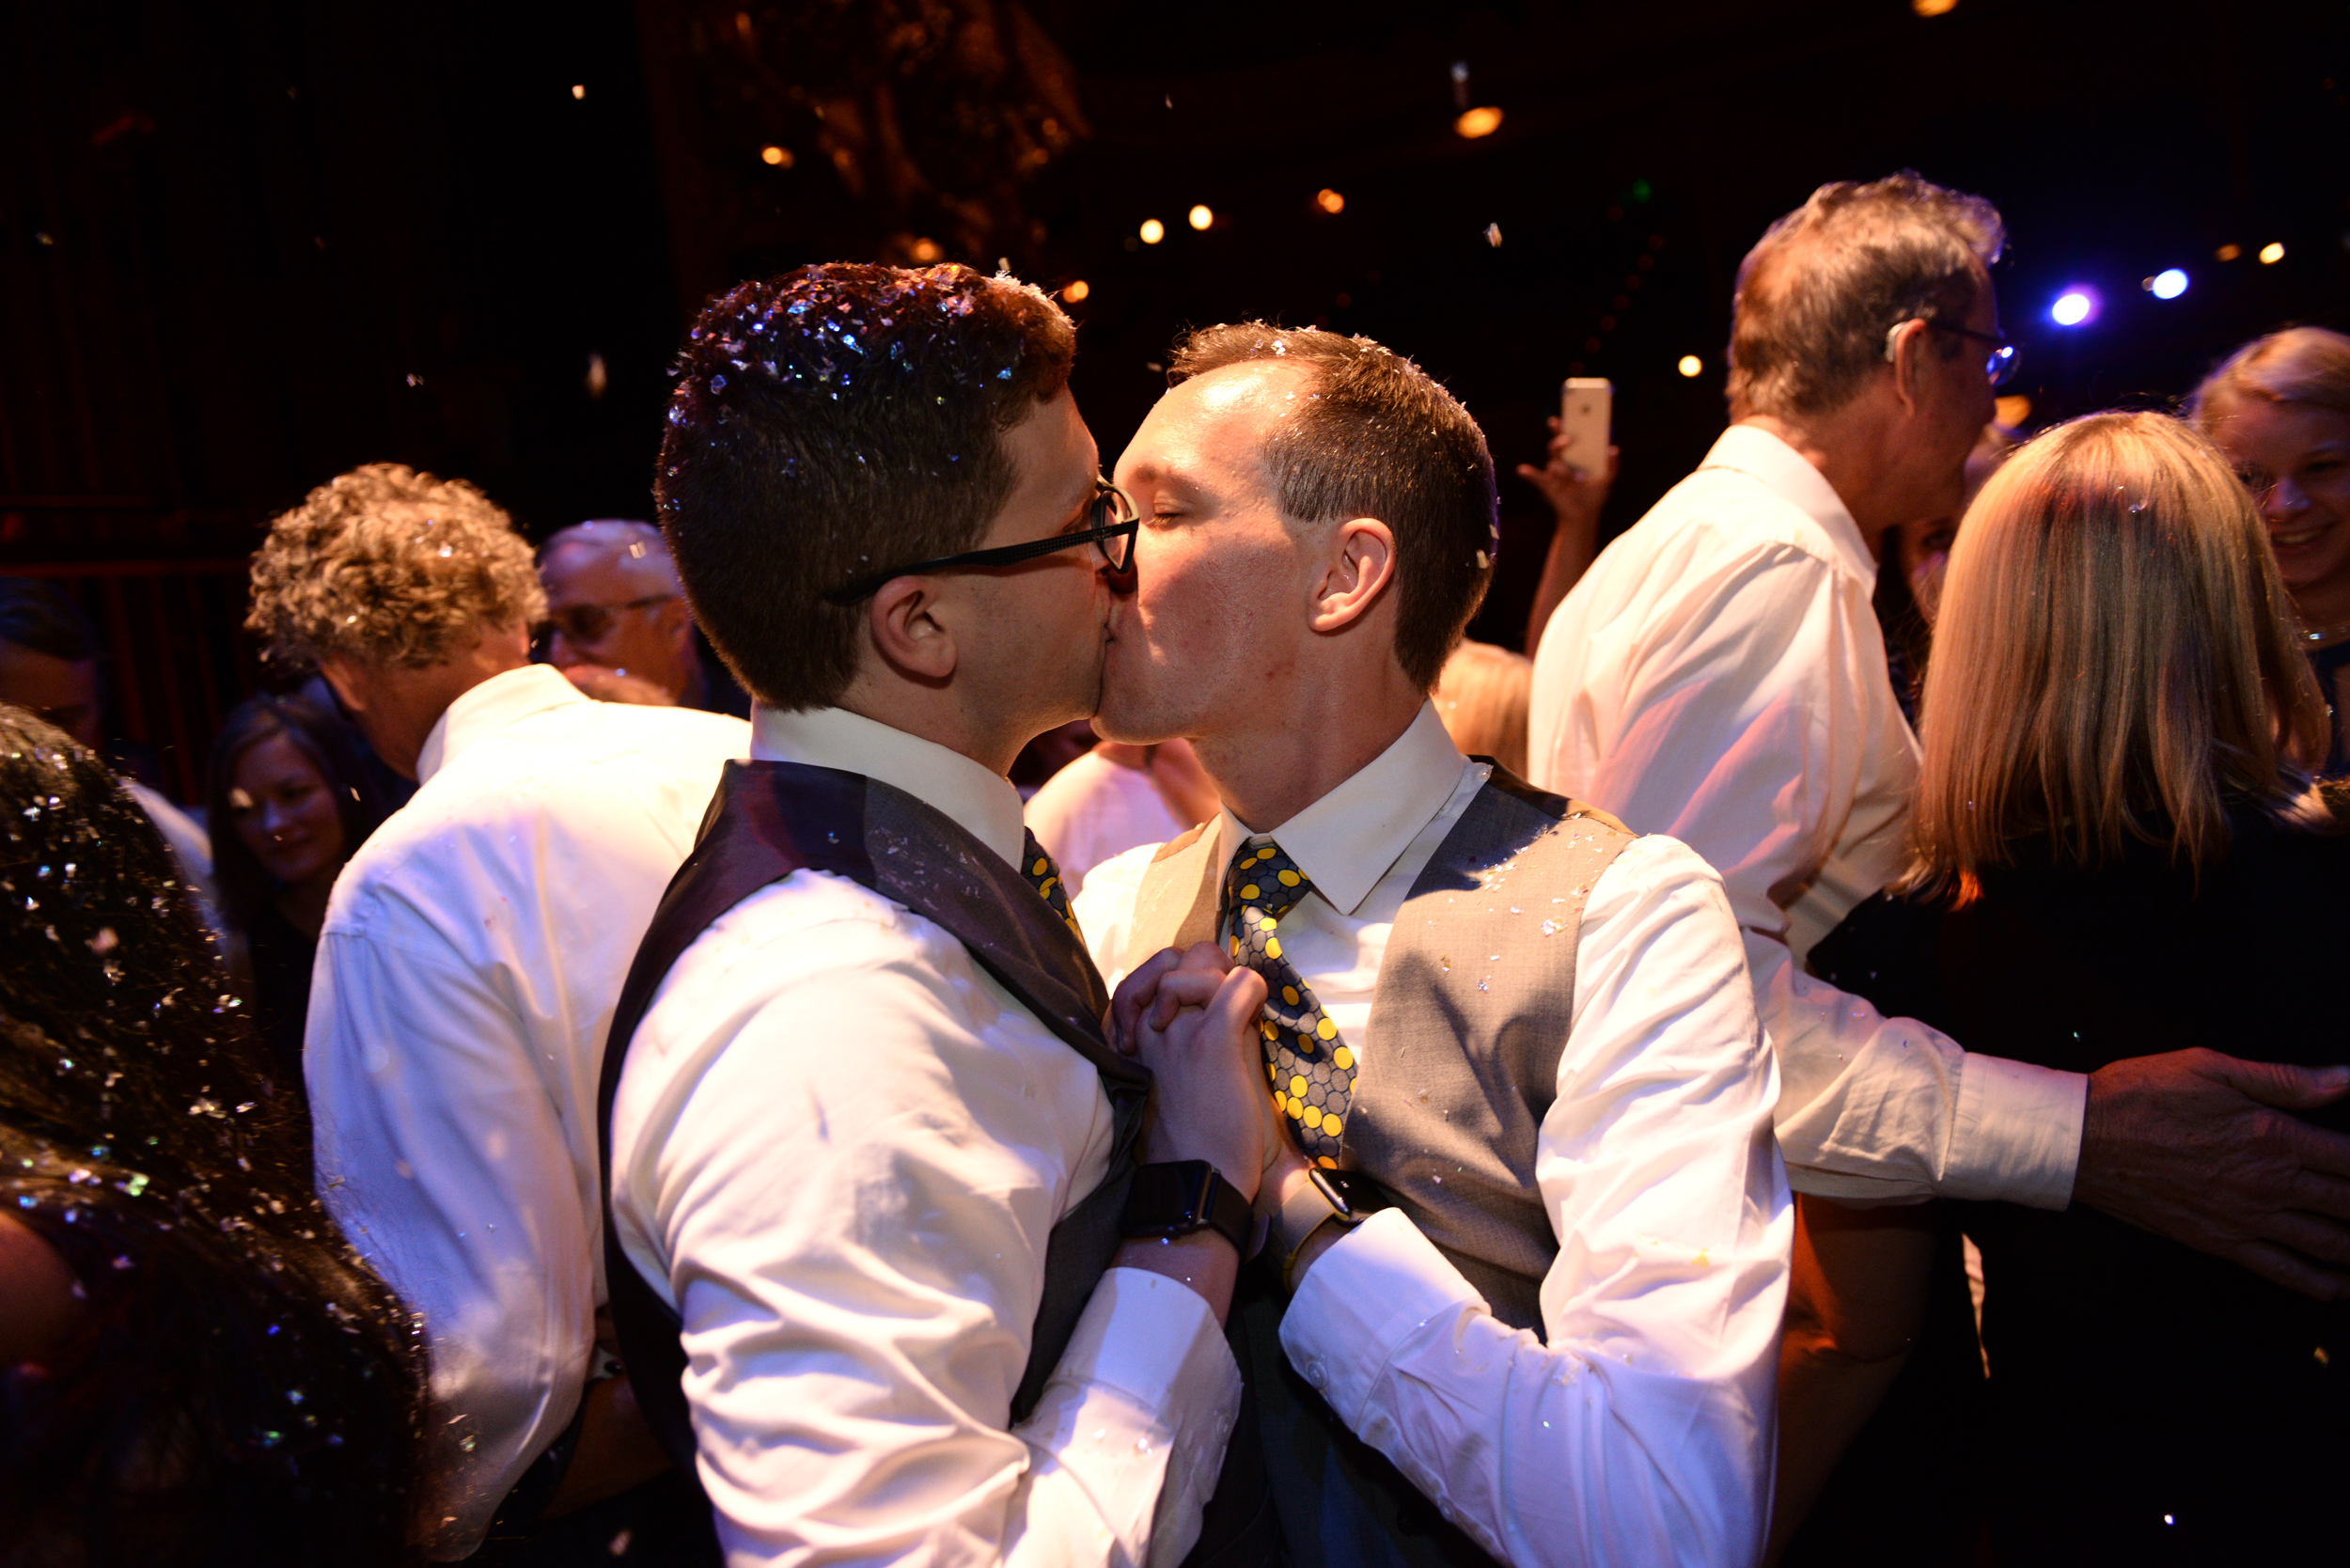 Grooms kissing under confetti on wedding dancefloor at The Colonial Theatre